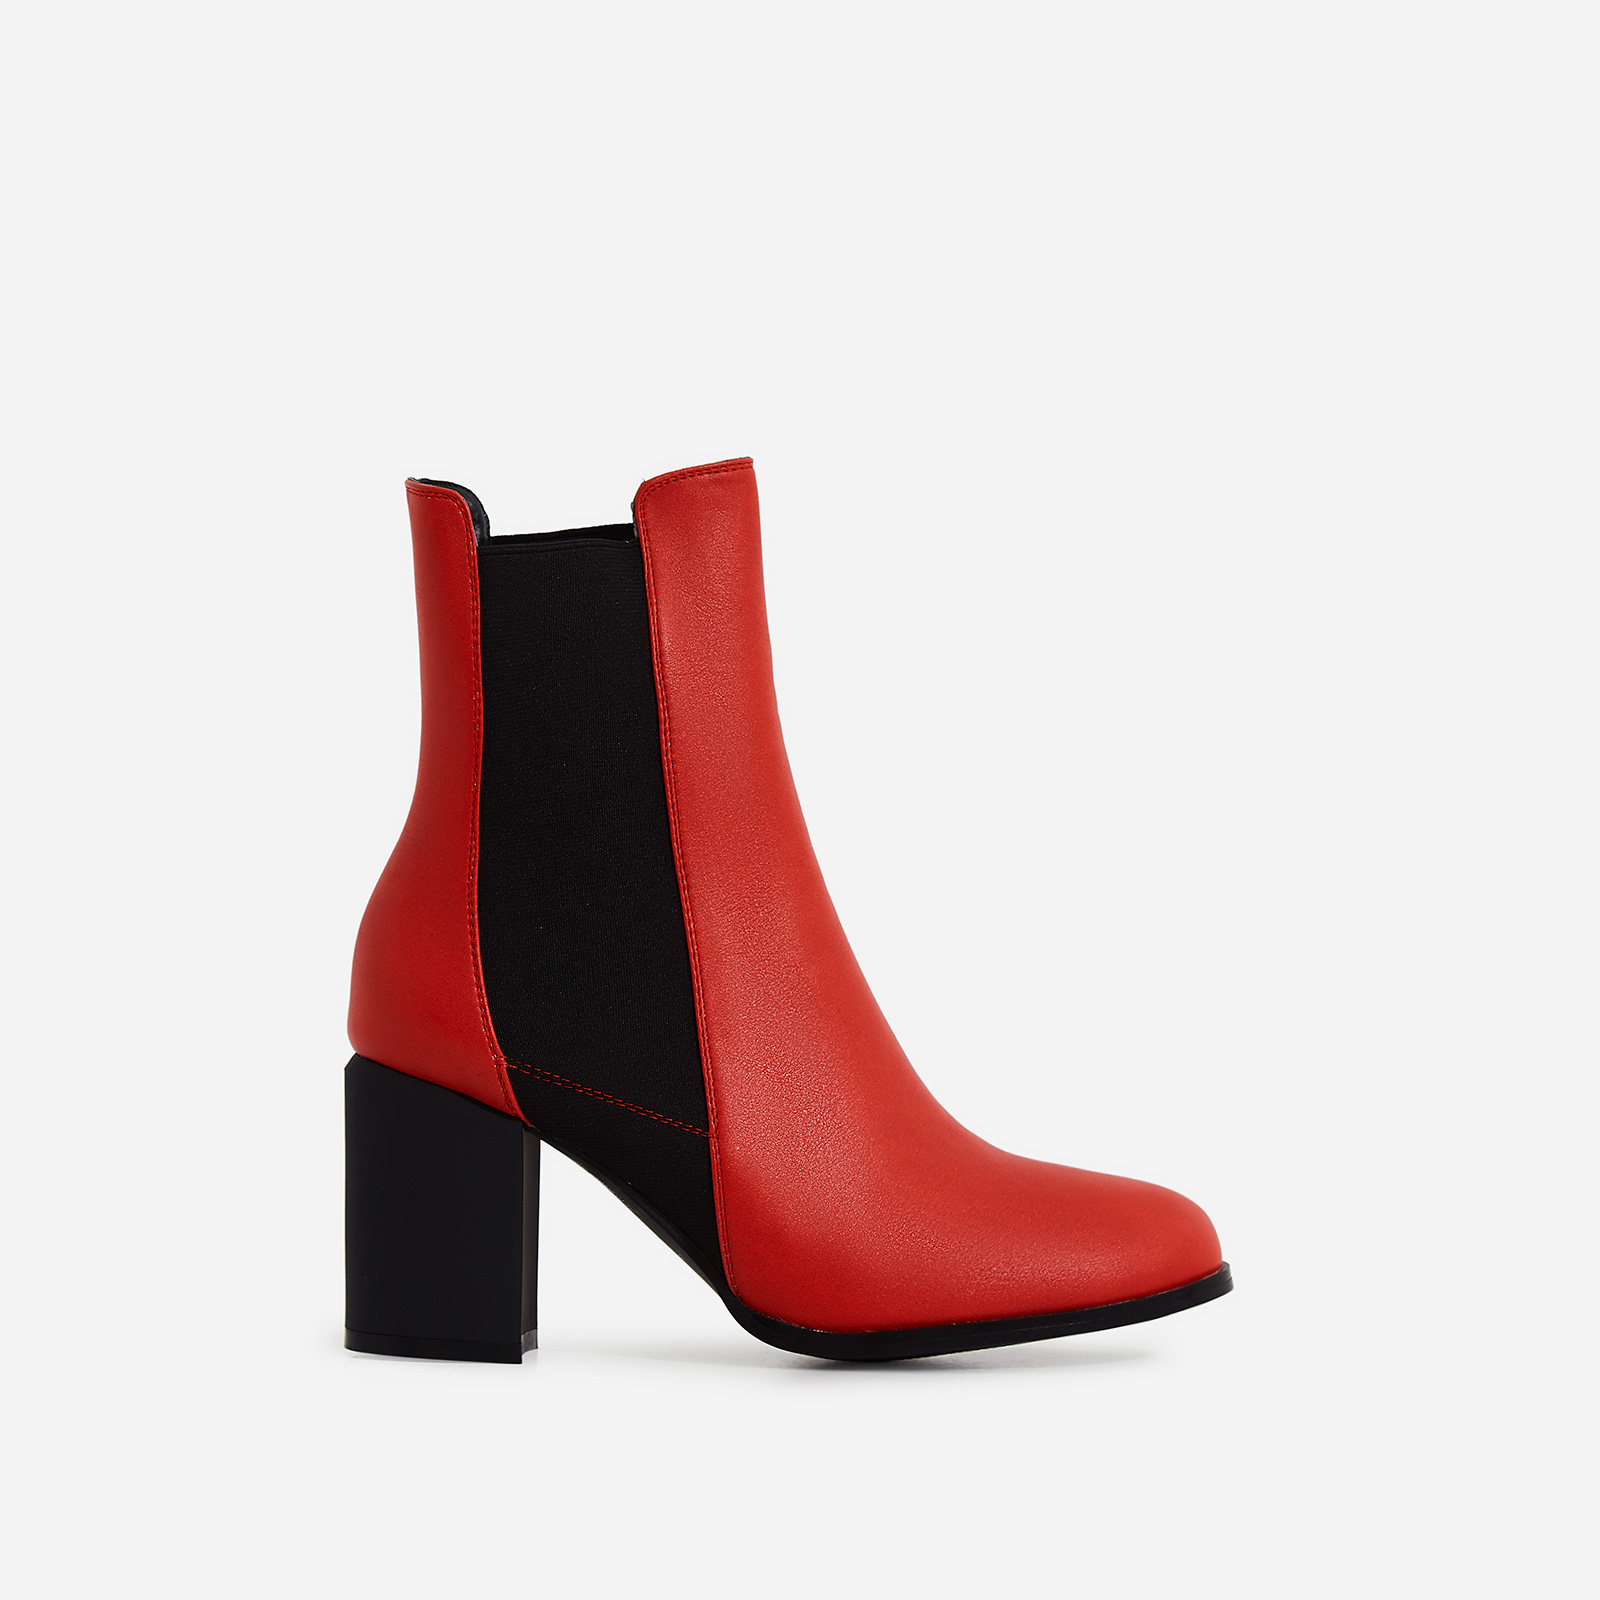 Runa Elasticated Block Heel Ankle Boot In Red Faux Leather